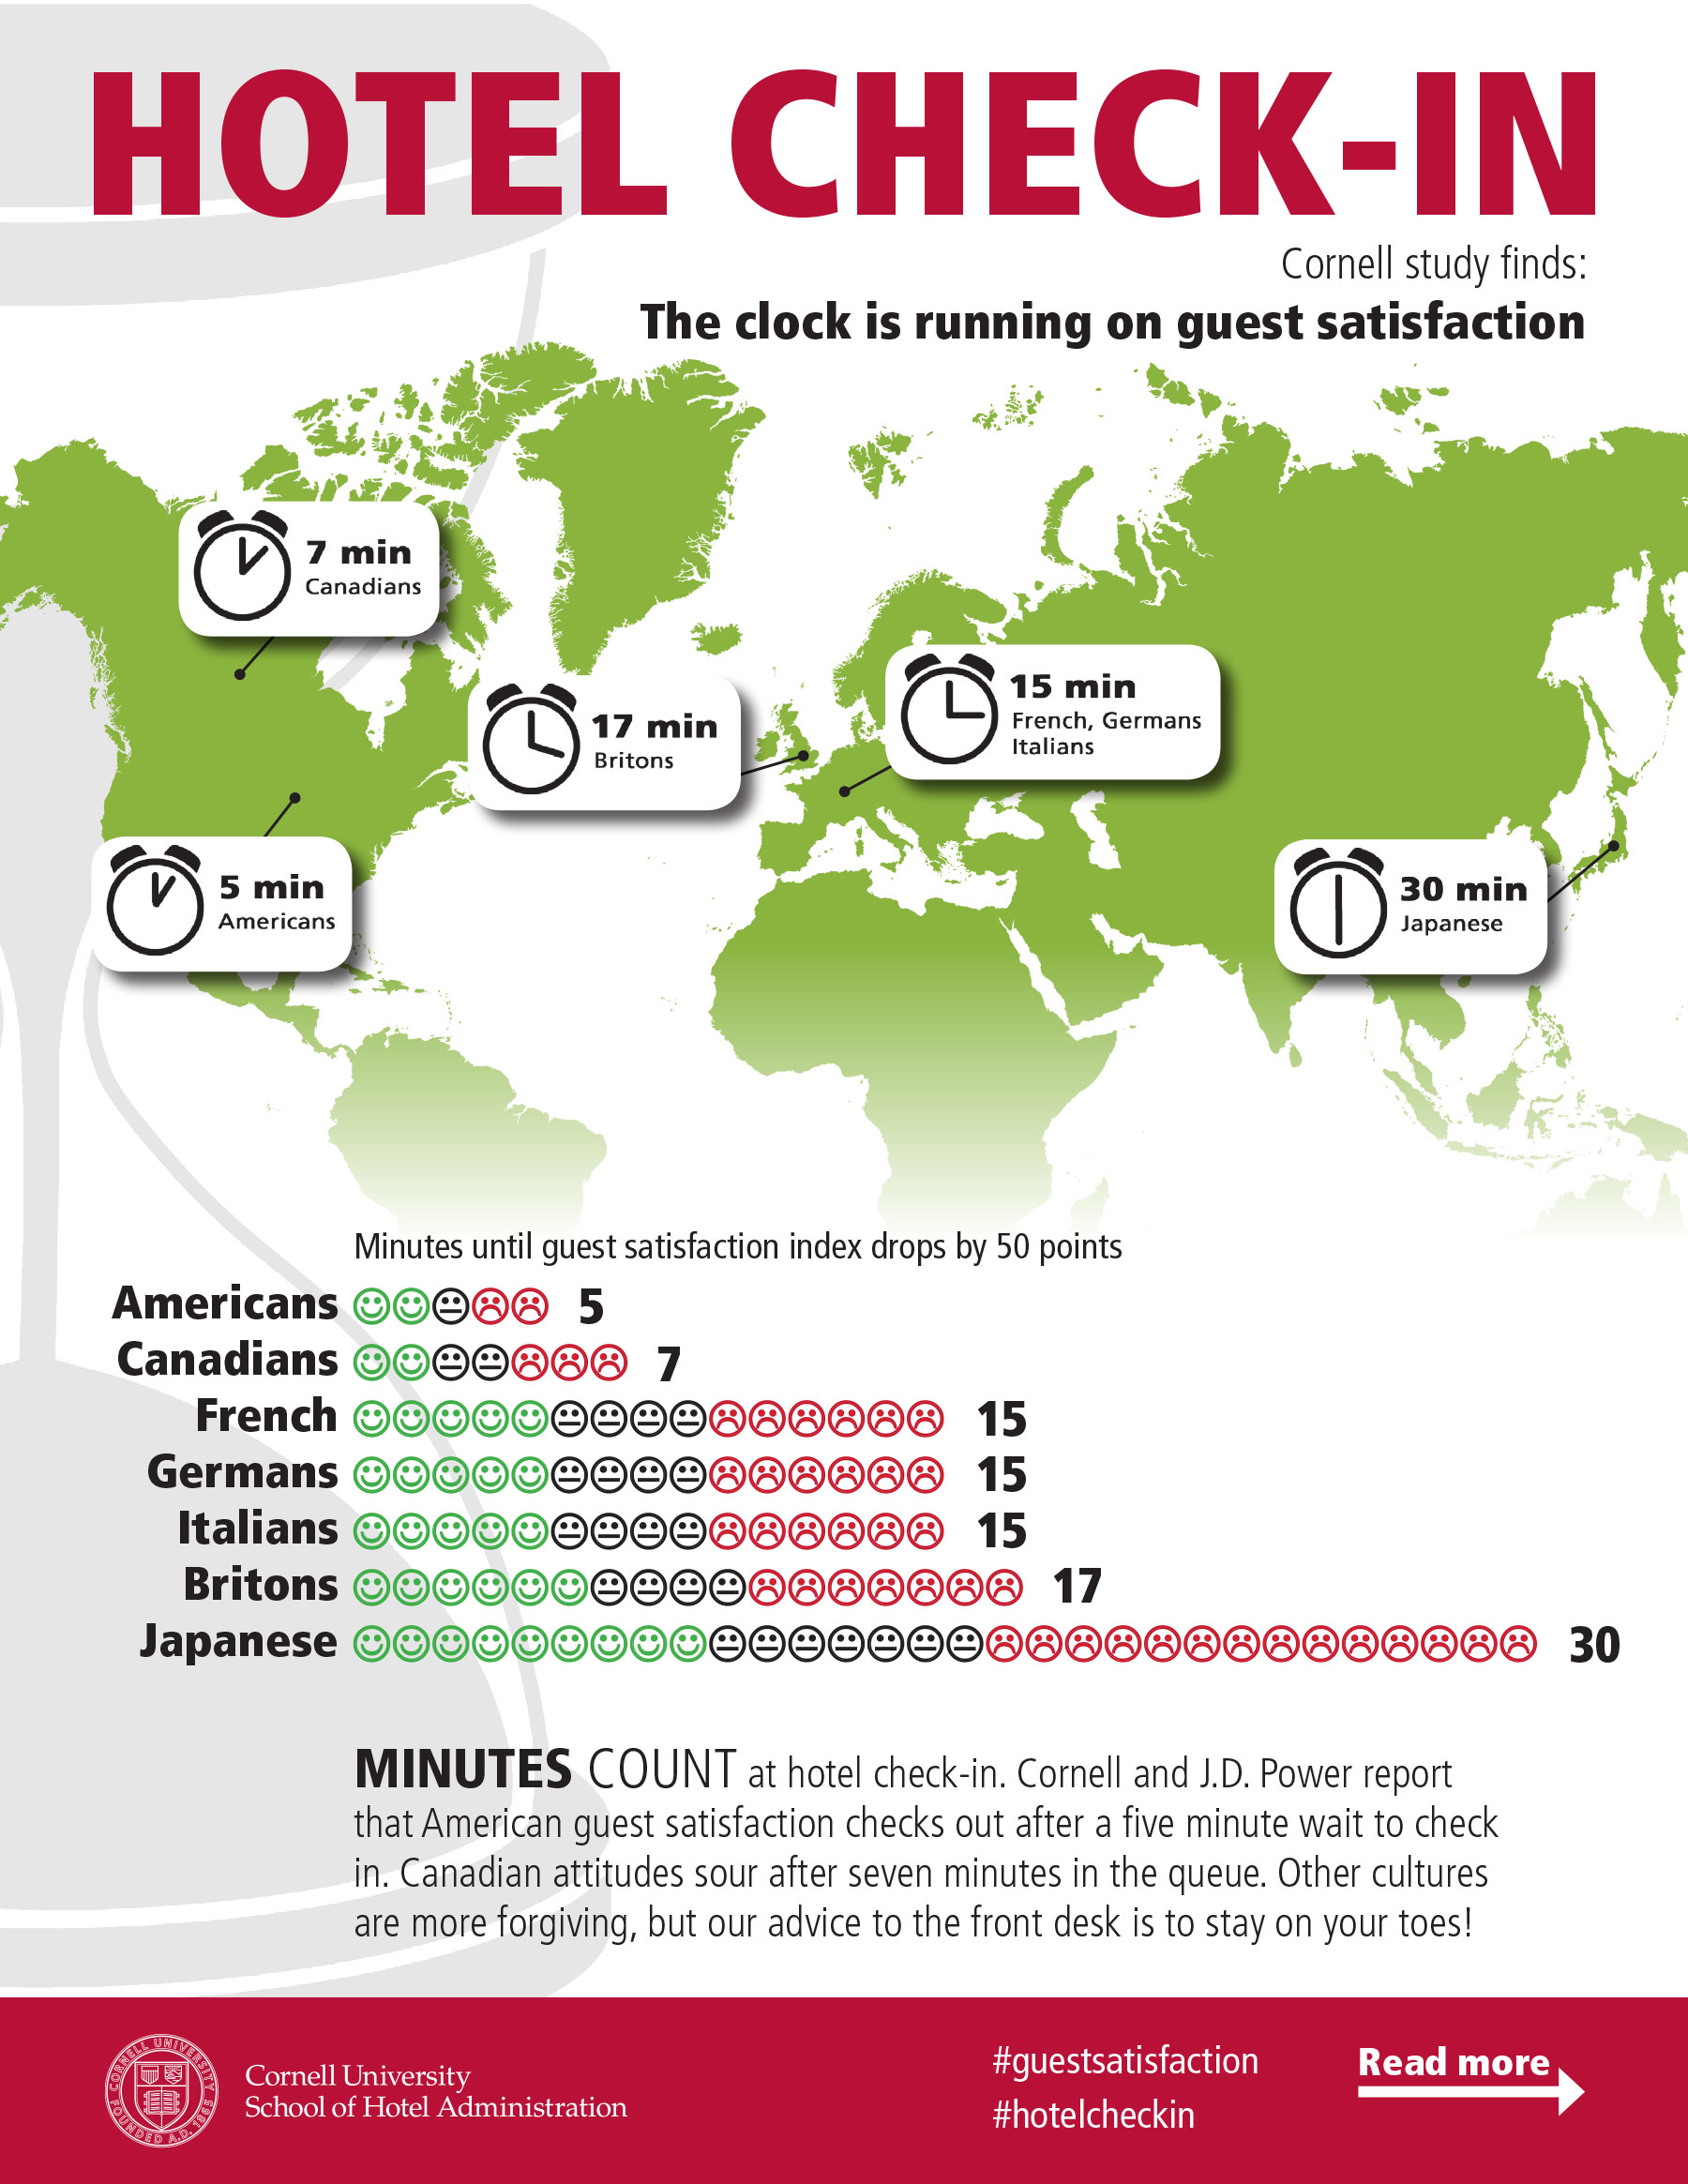 Lost in Translation: Cross-Country Differences in Hotel Guest Satisfaction